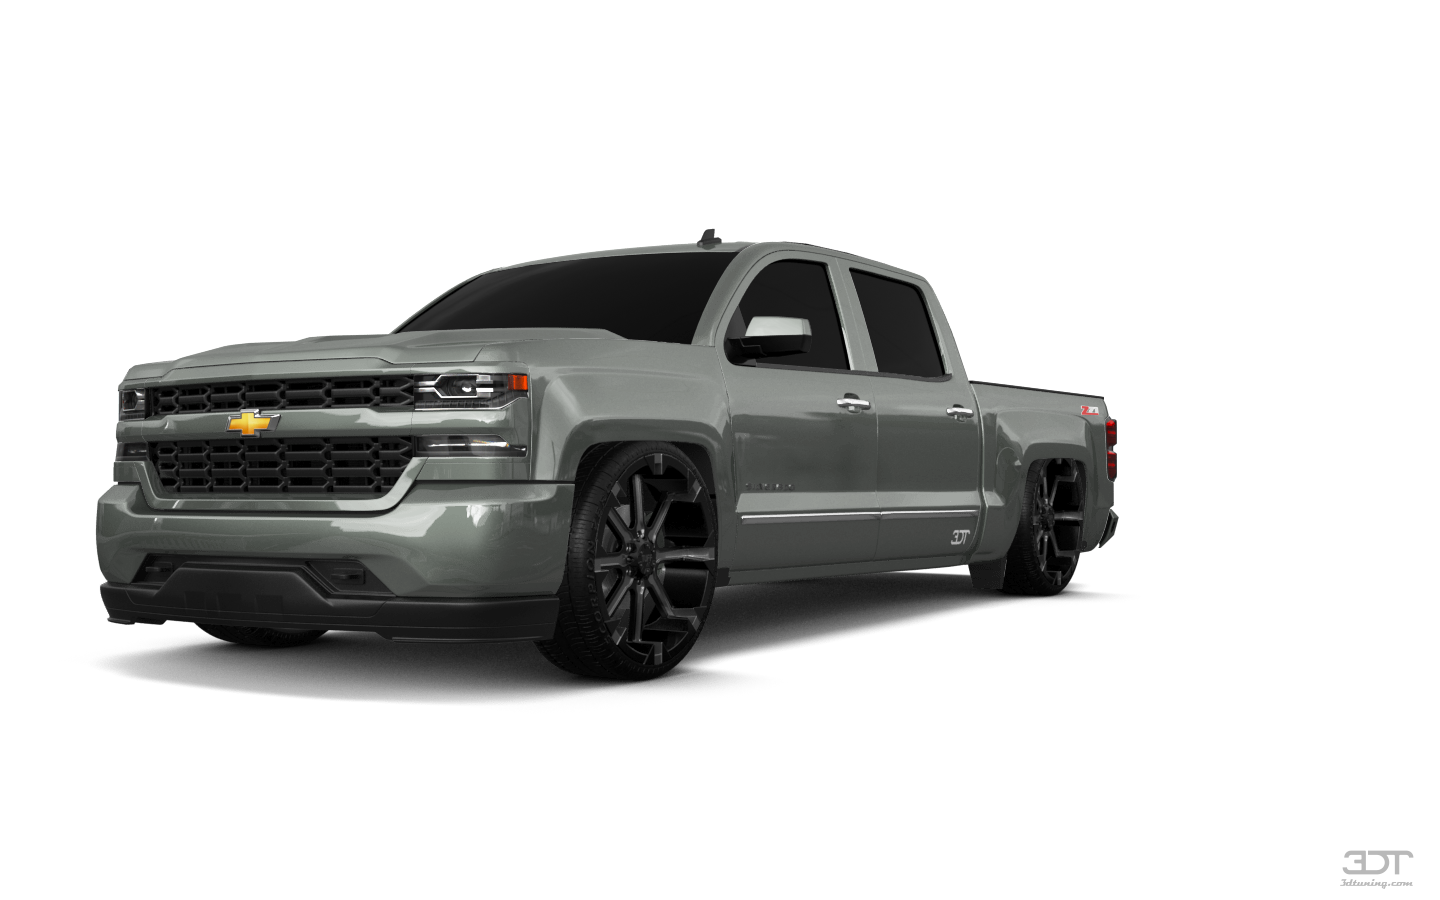 Chevrolet Silverado 1500 4 Door pickup truck 2016 tuning